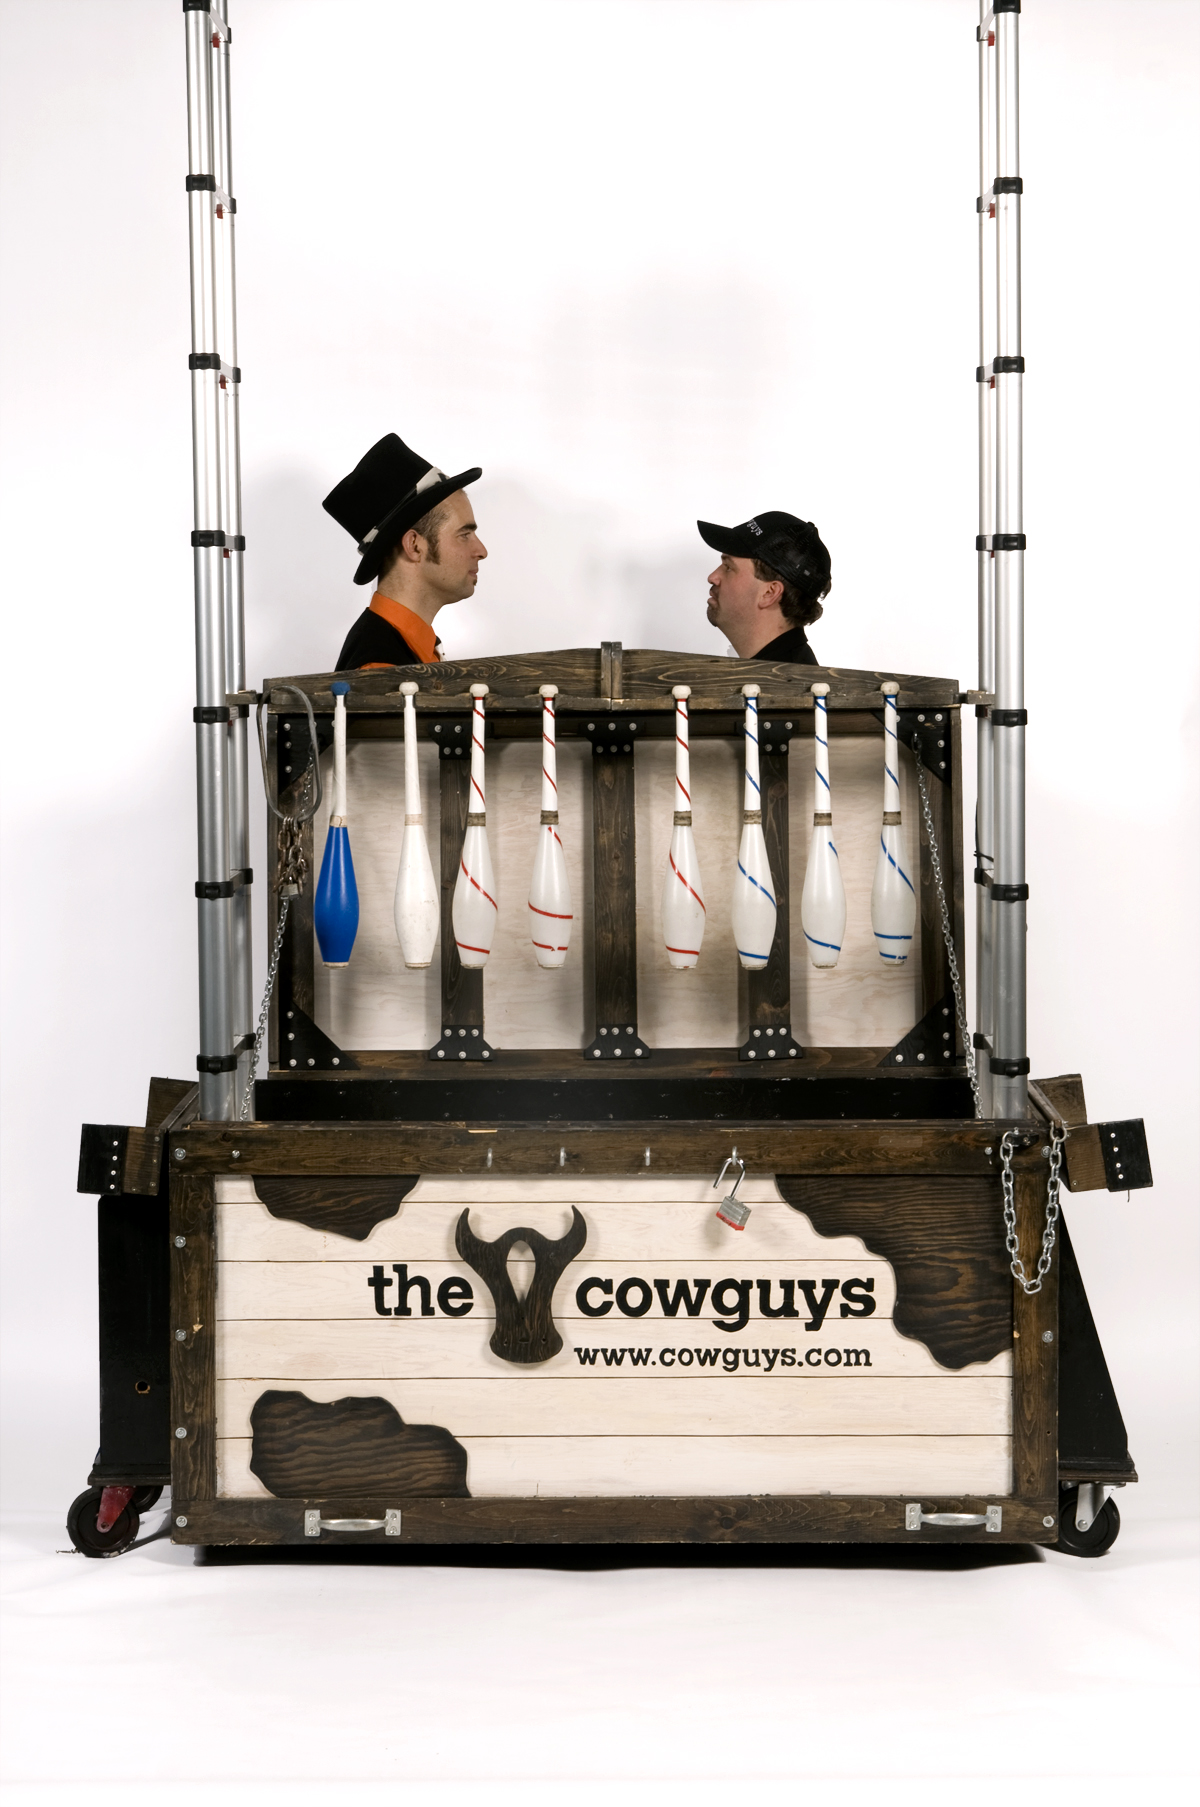 The Cowguys Promos_4X6_0202